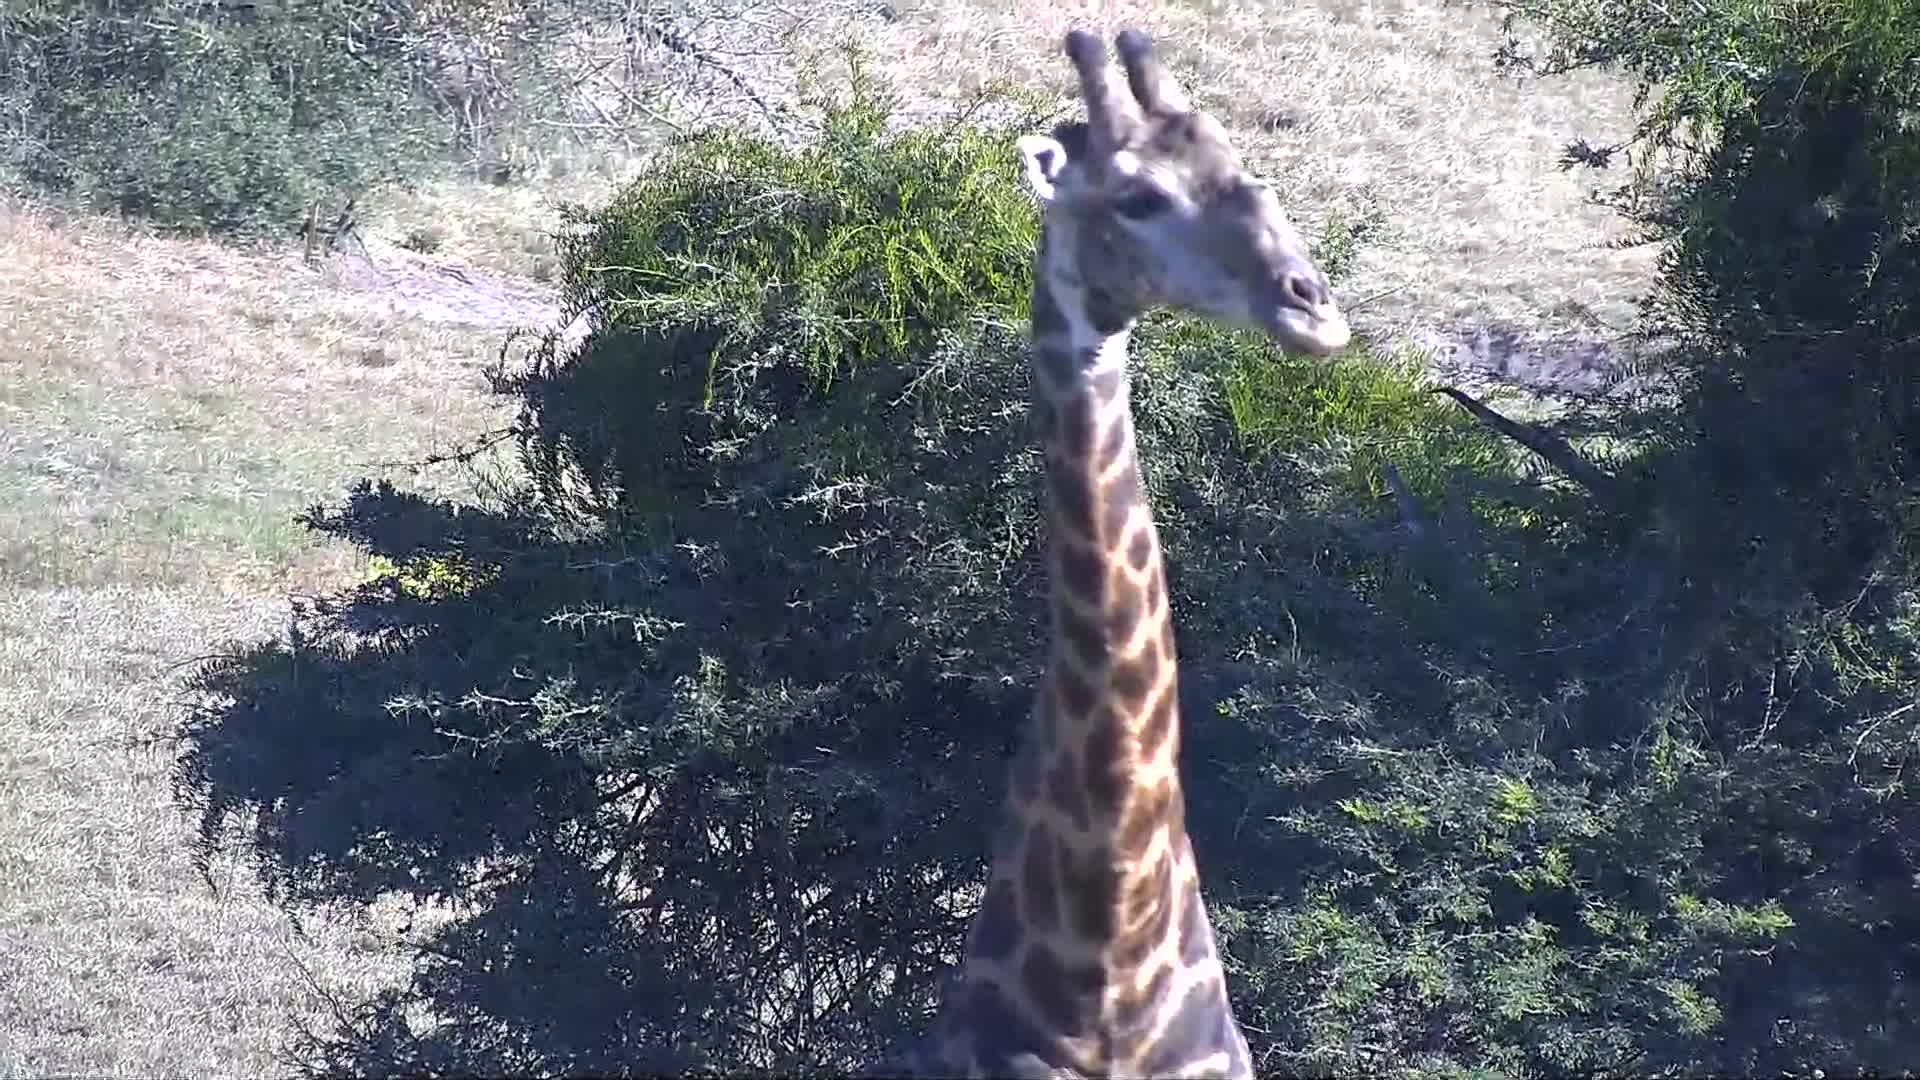 VIDEO: Giraffe could not decide to drink